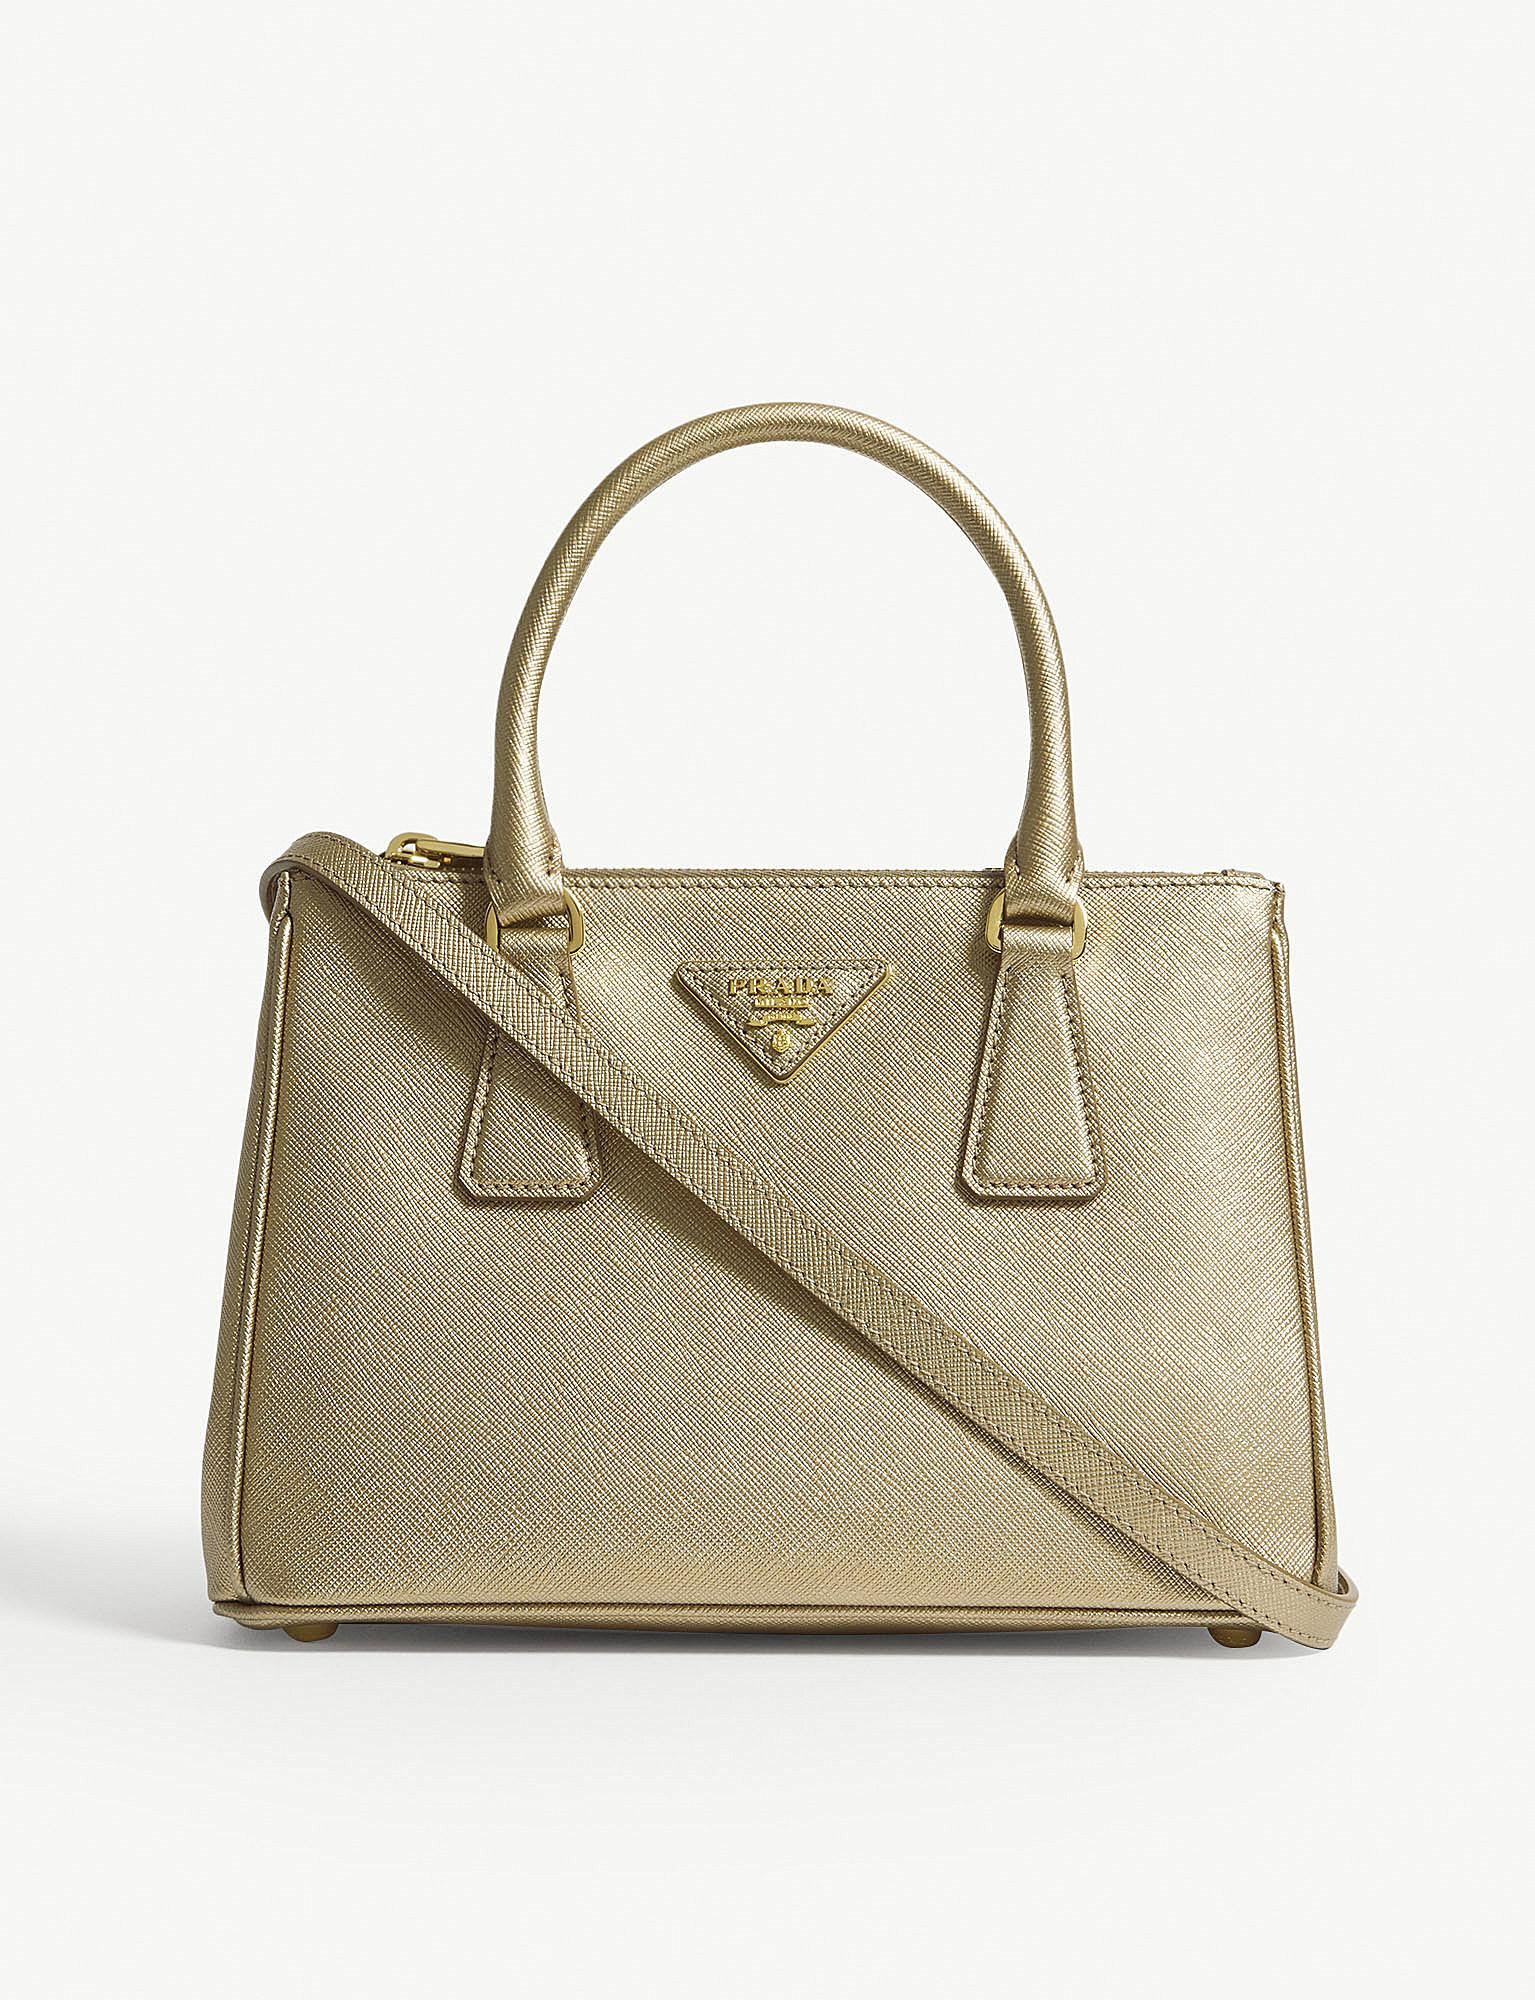 f31f93acdf Lyst - Prada Gold Galleria Leather Tote Bag in Metallic